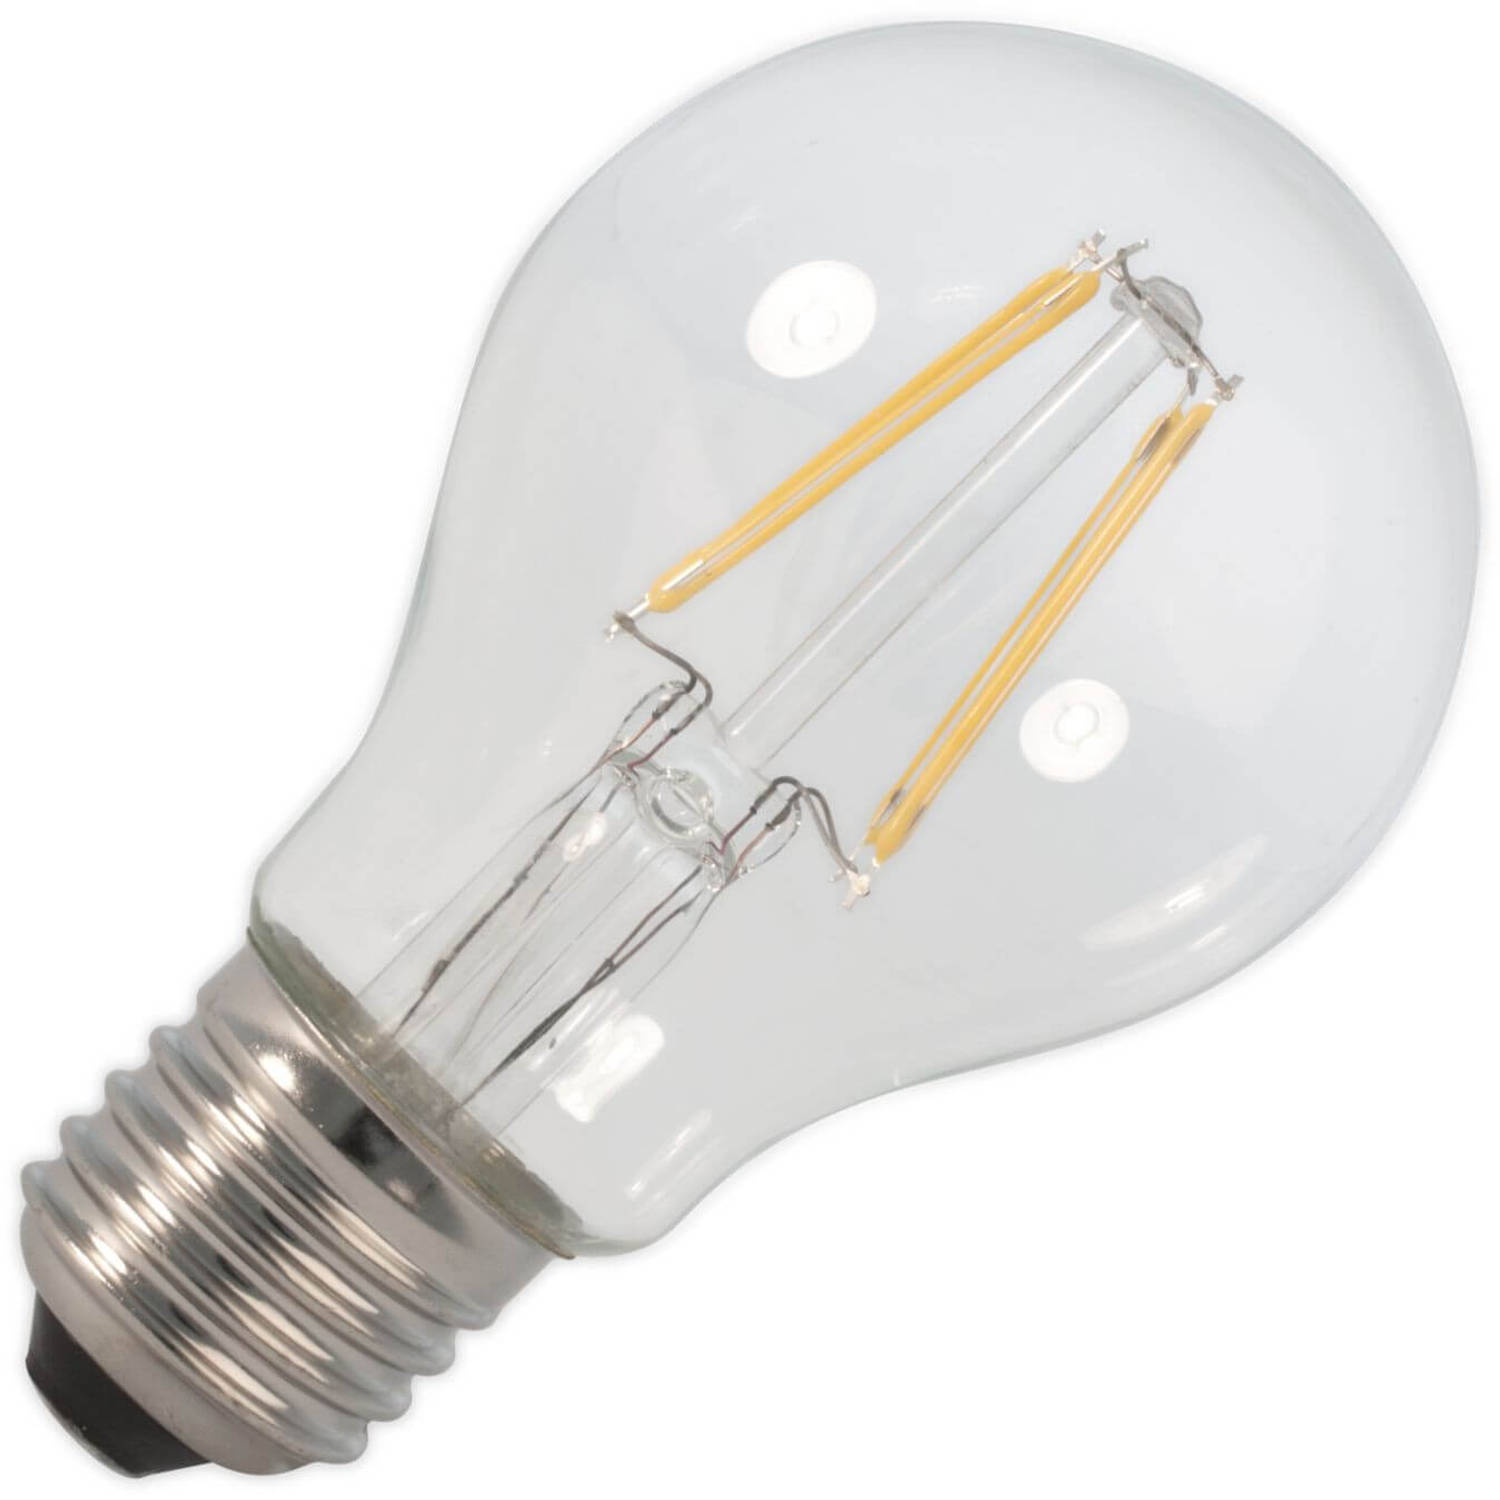 Standaardlamp led filament 4w (vervangt 40w) grote fitting e27